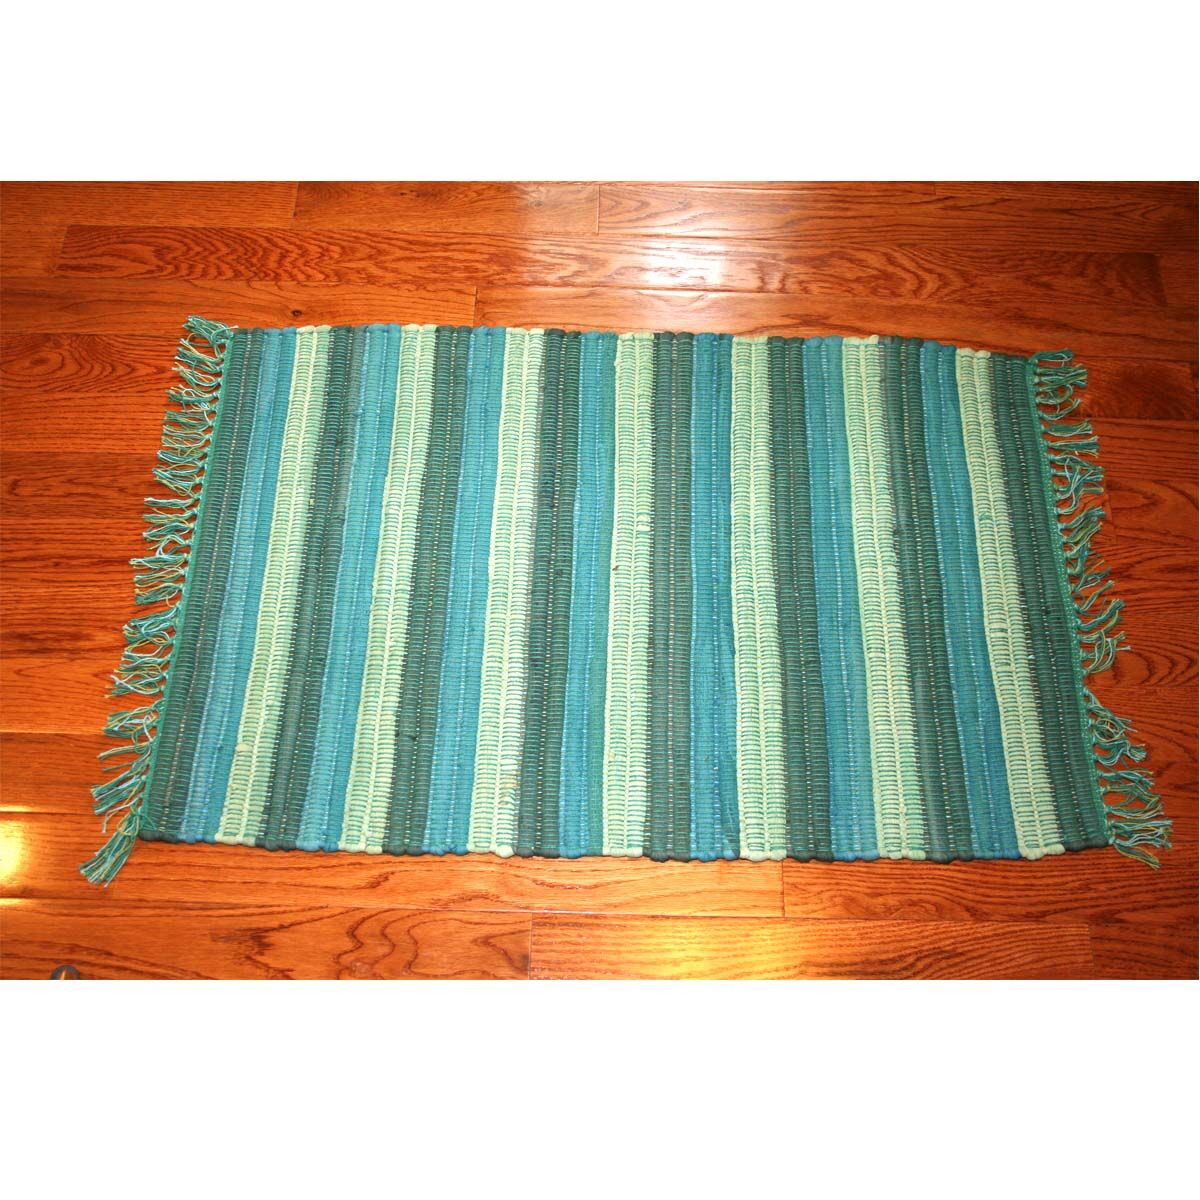 One-of-a-Kind Linmore Nubby Stripe Hand-Woven Teal Area Rug Rug Size: Rectangle 3' x 5'